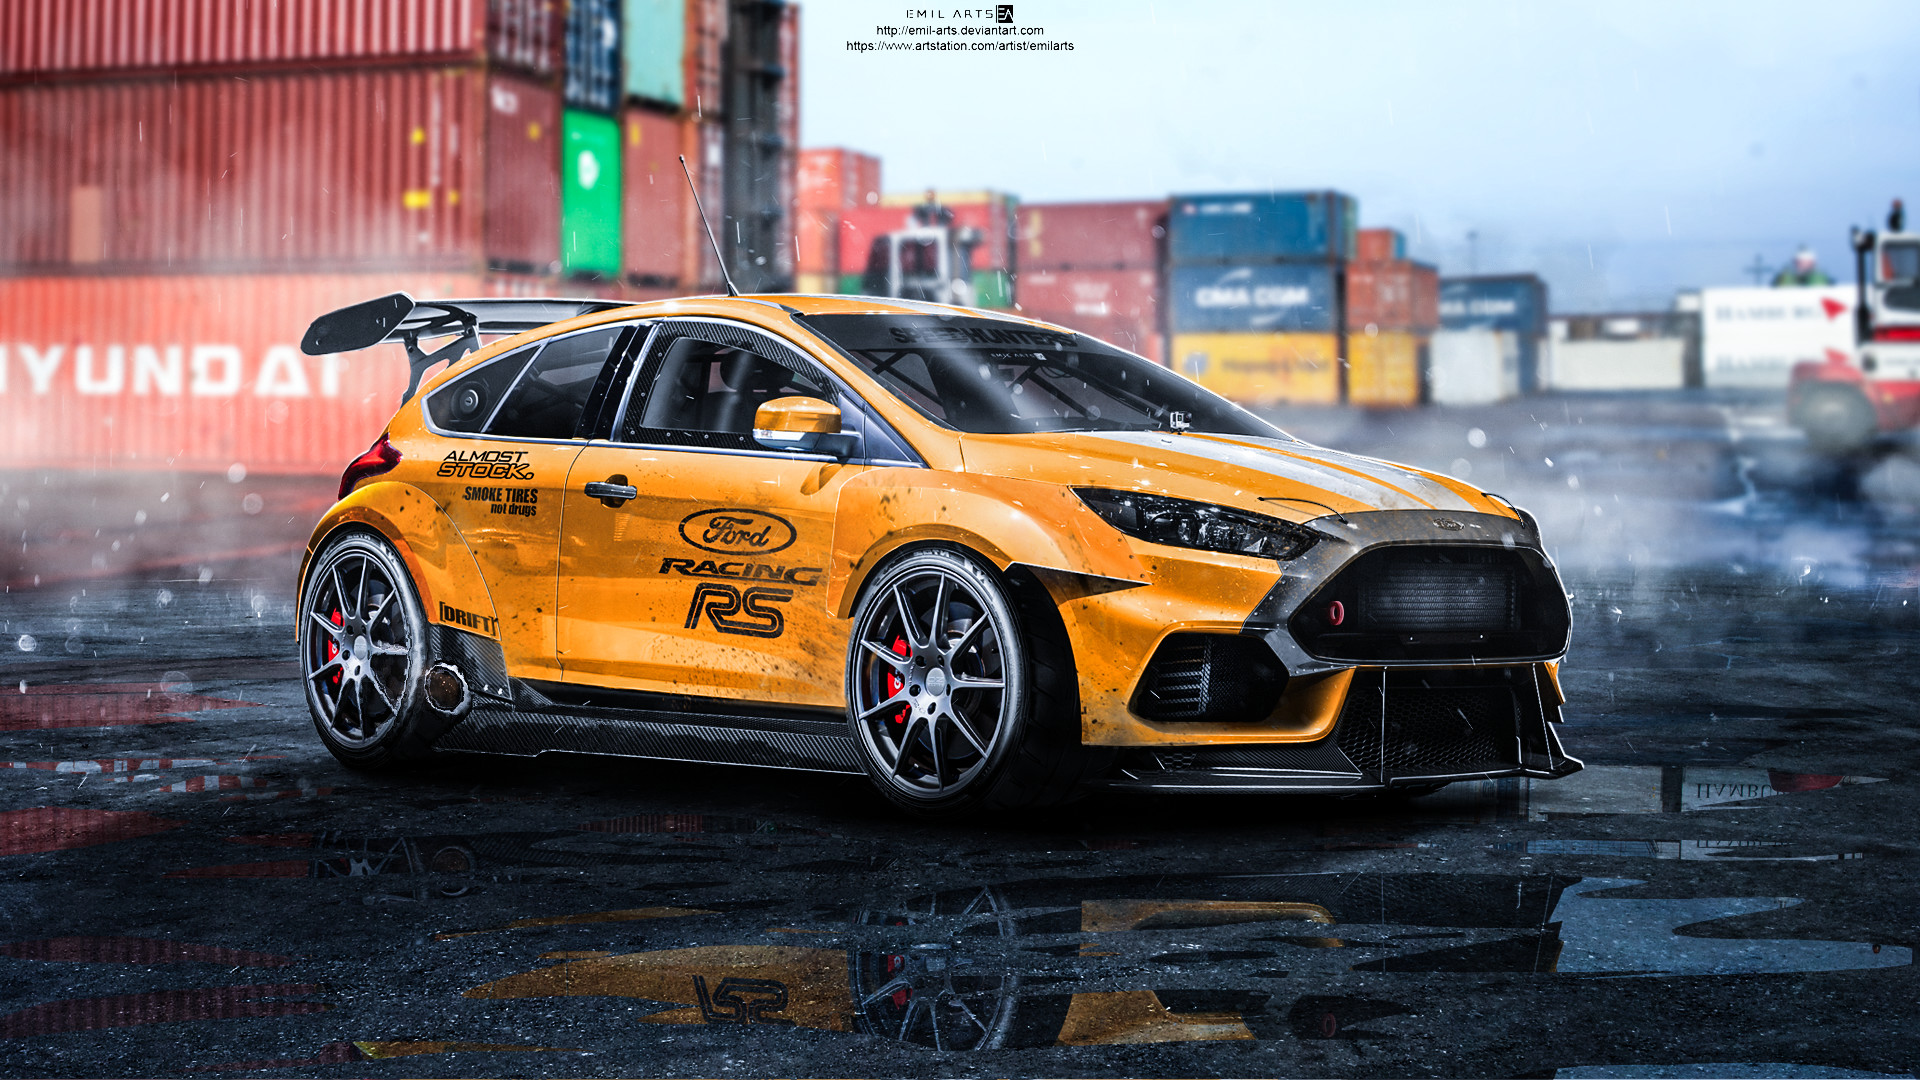 Ford Focus St Tuning >> ArtStation - Ford Focus RS 2015 Tuning, Emil Arts